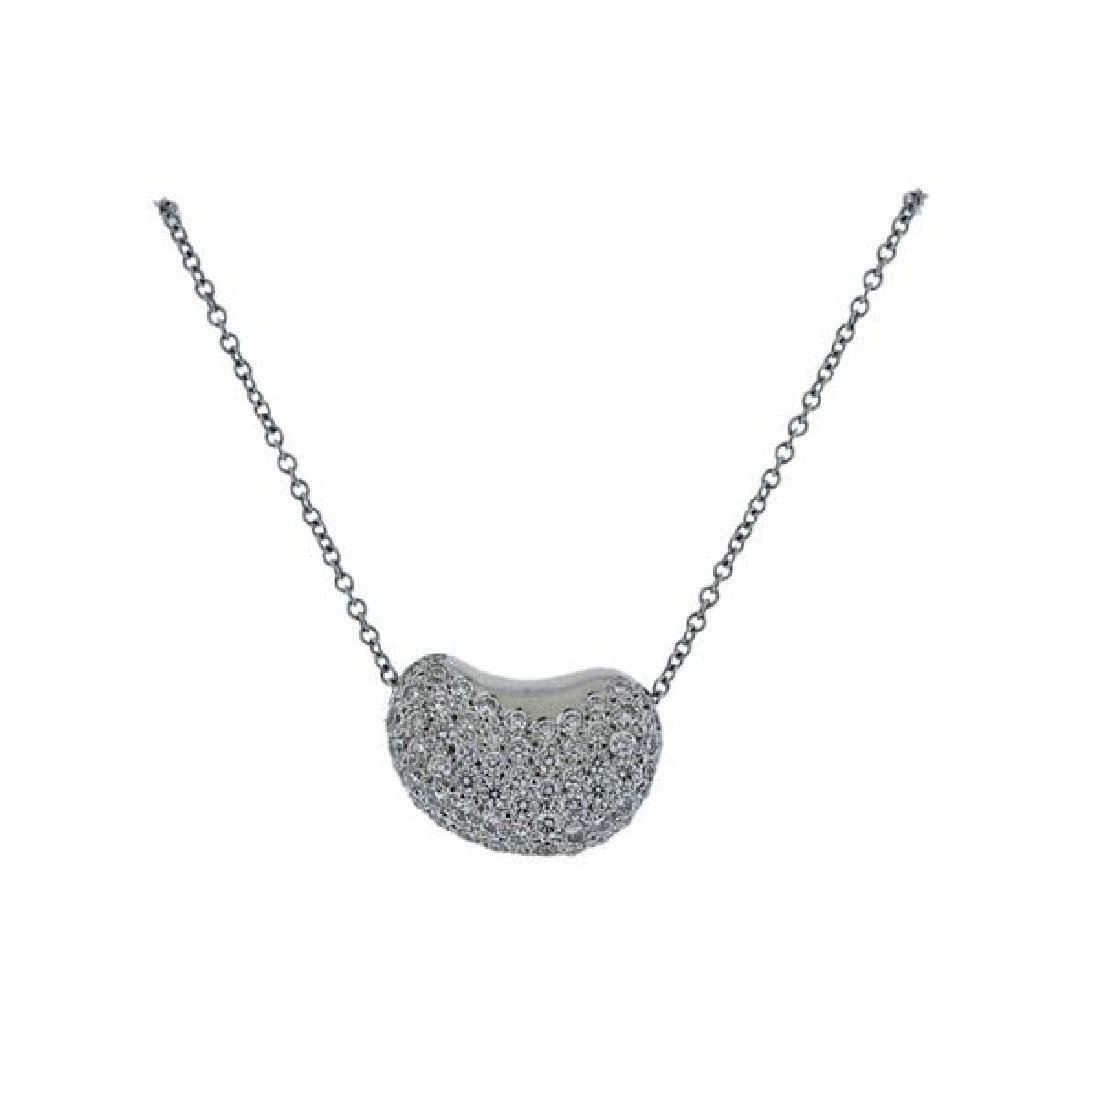 Tiffany & Co Peretti Platinum Diamond Bean Necklace